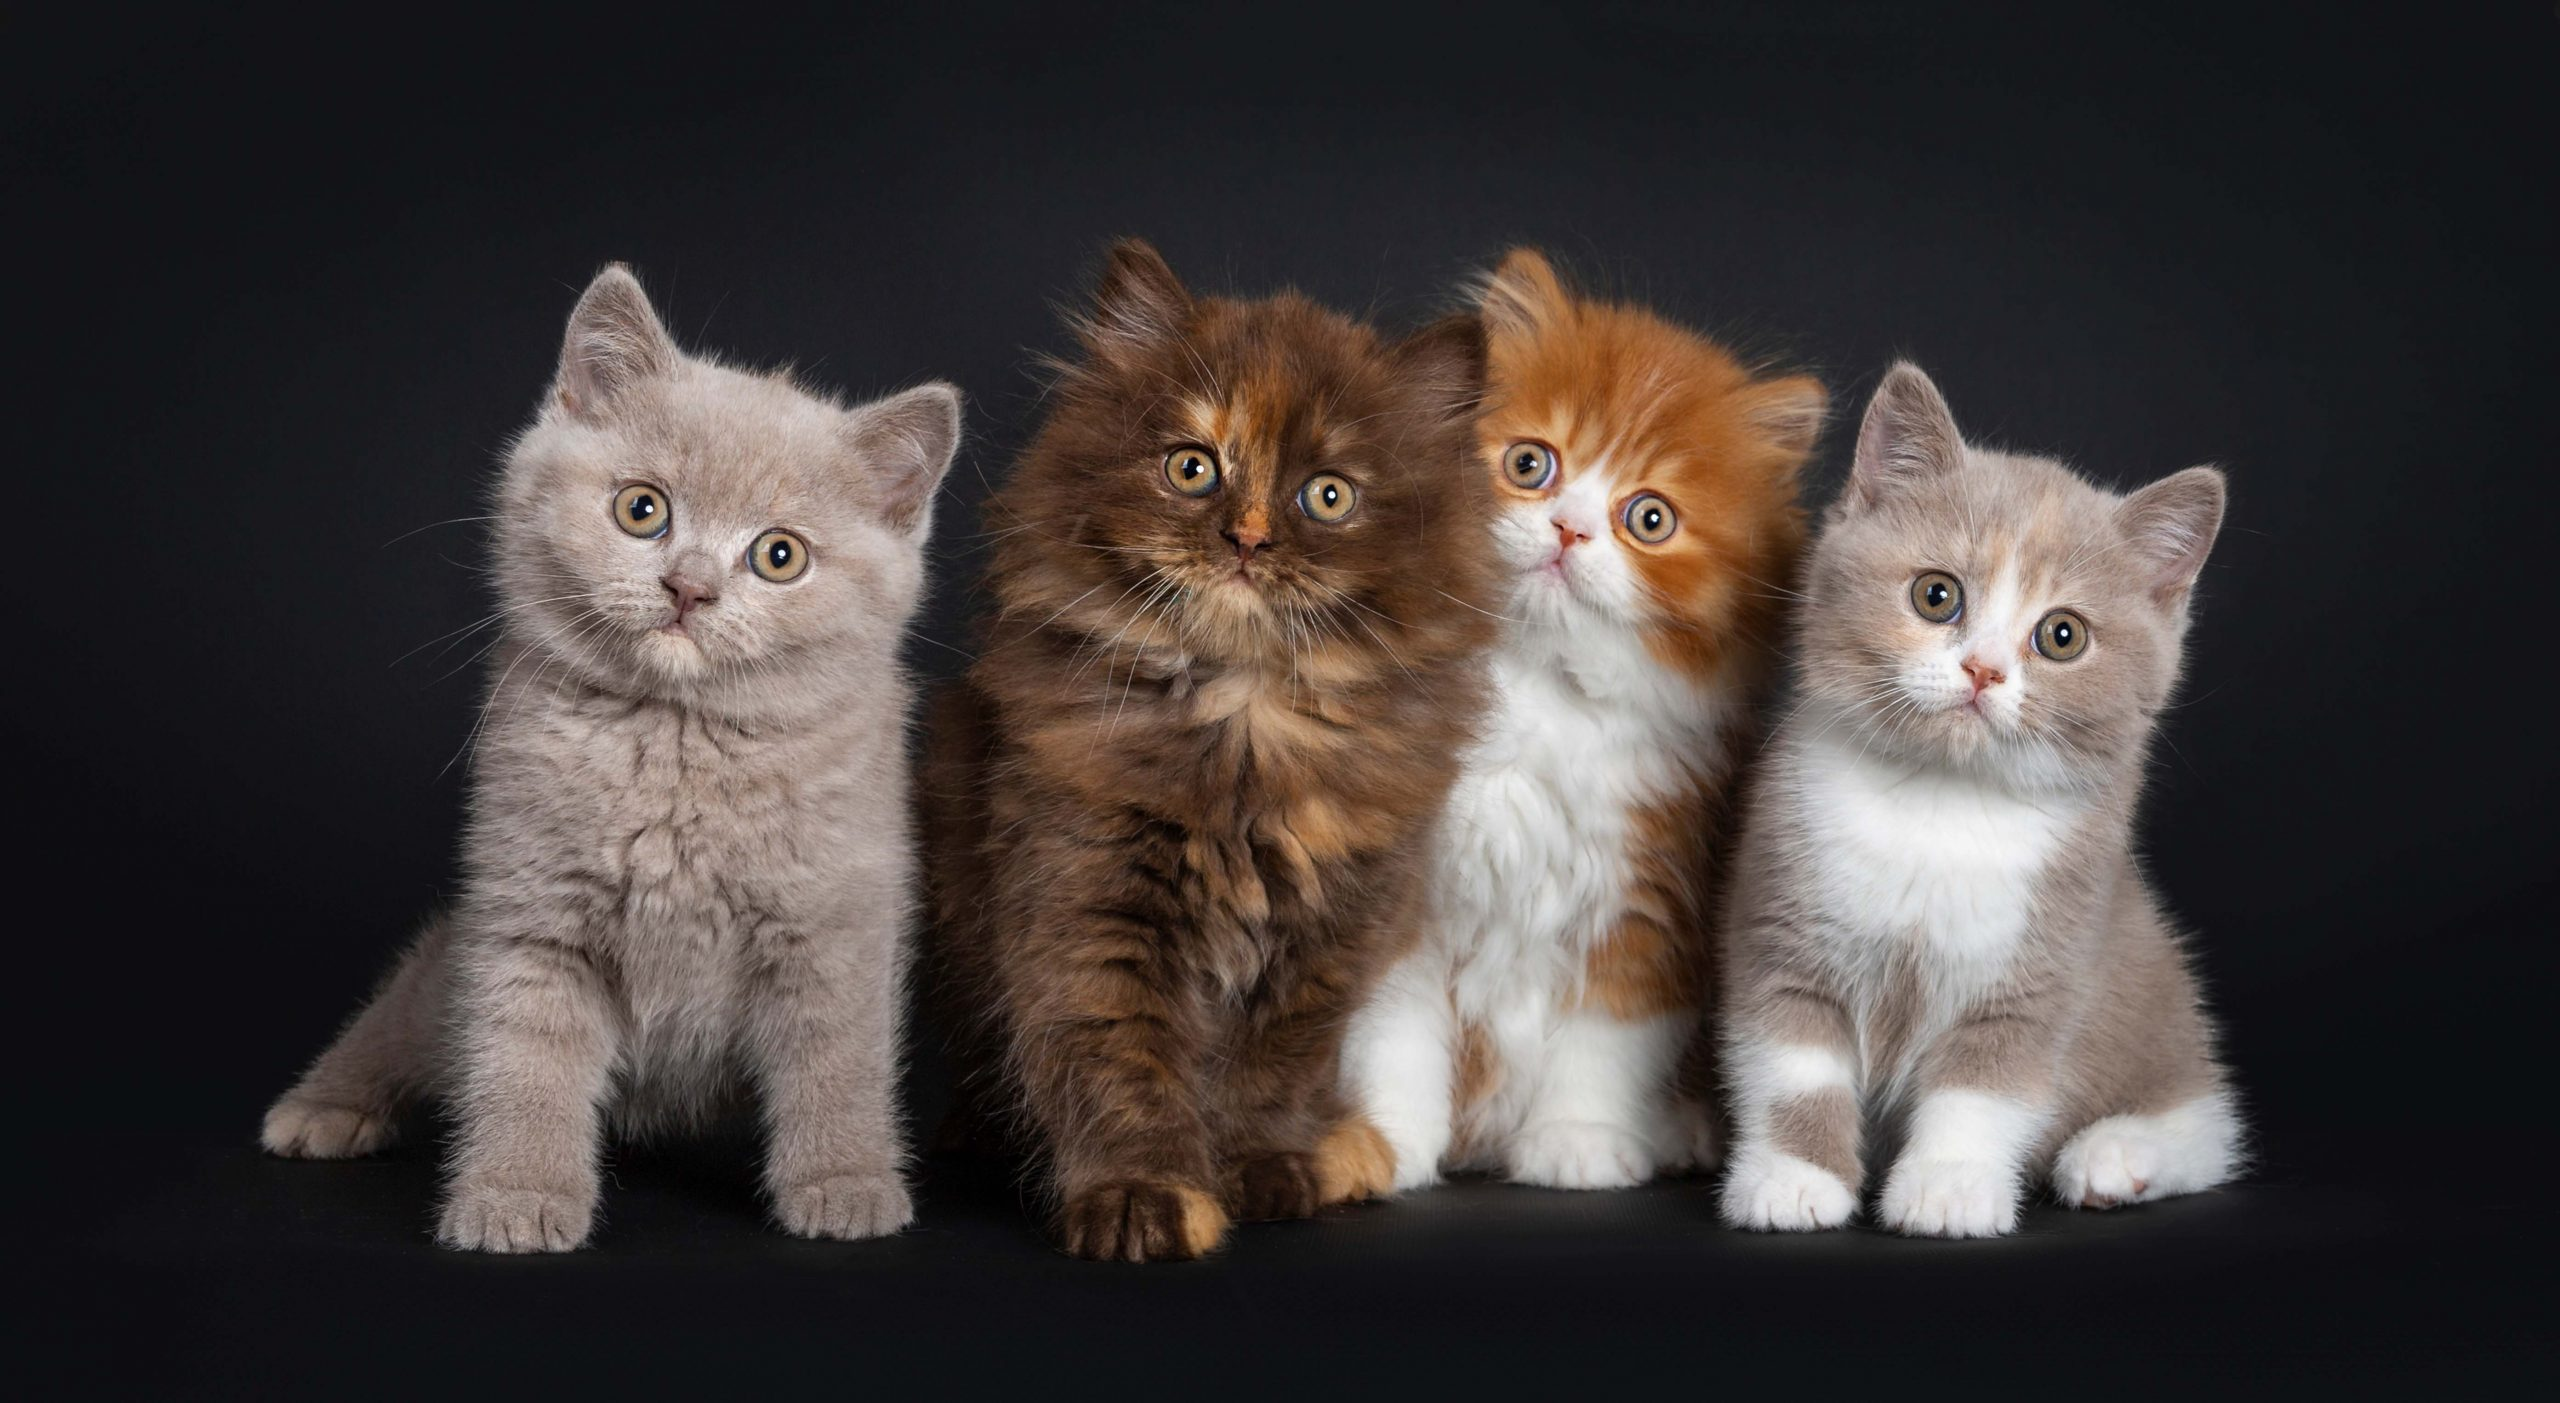 Why Do Cats Have Different Coloured Kittens? 1